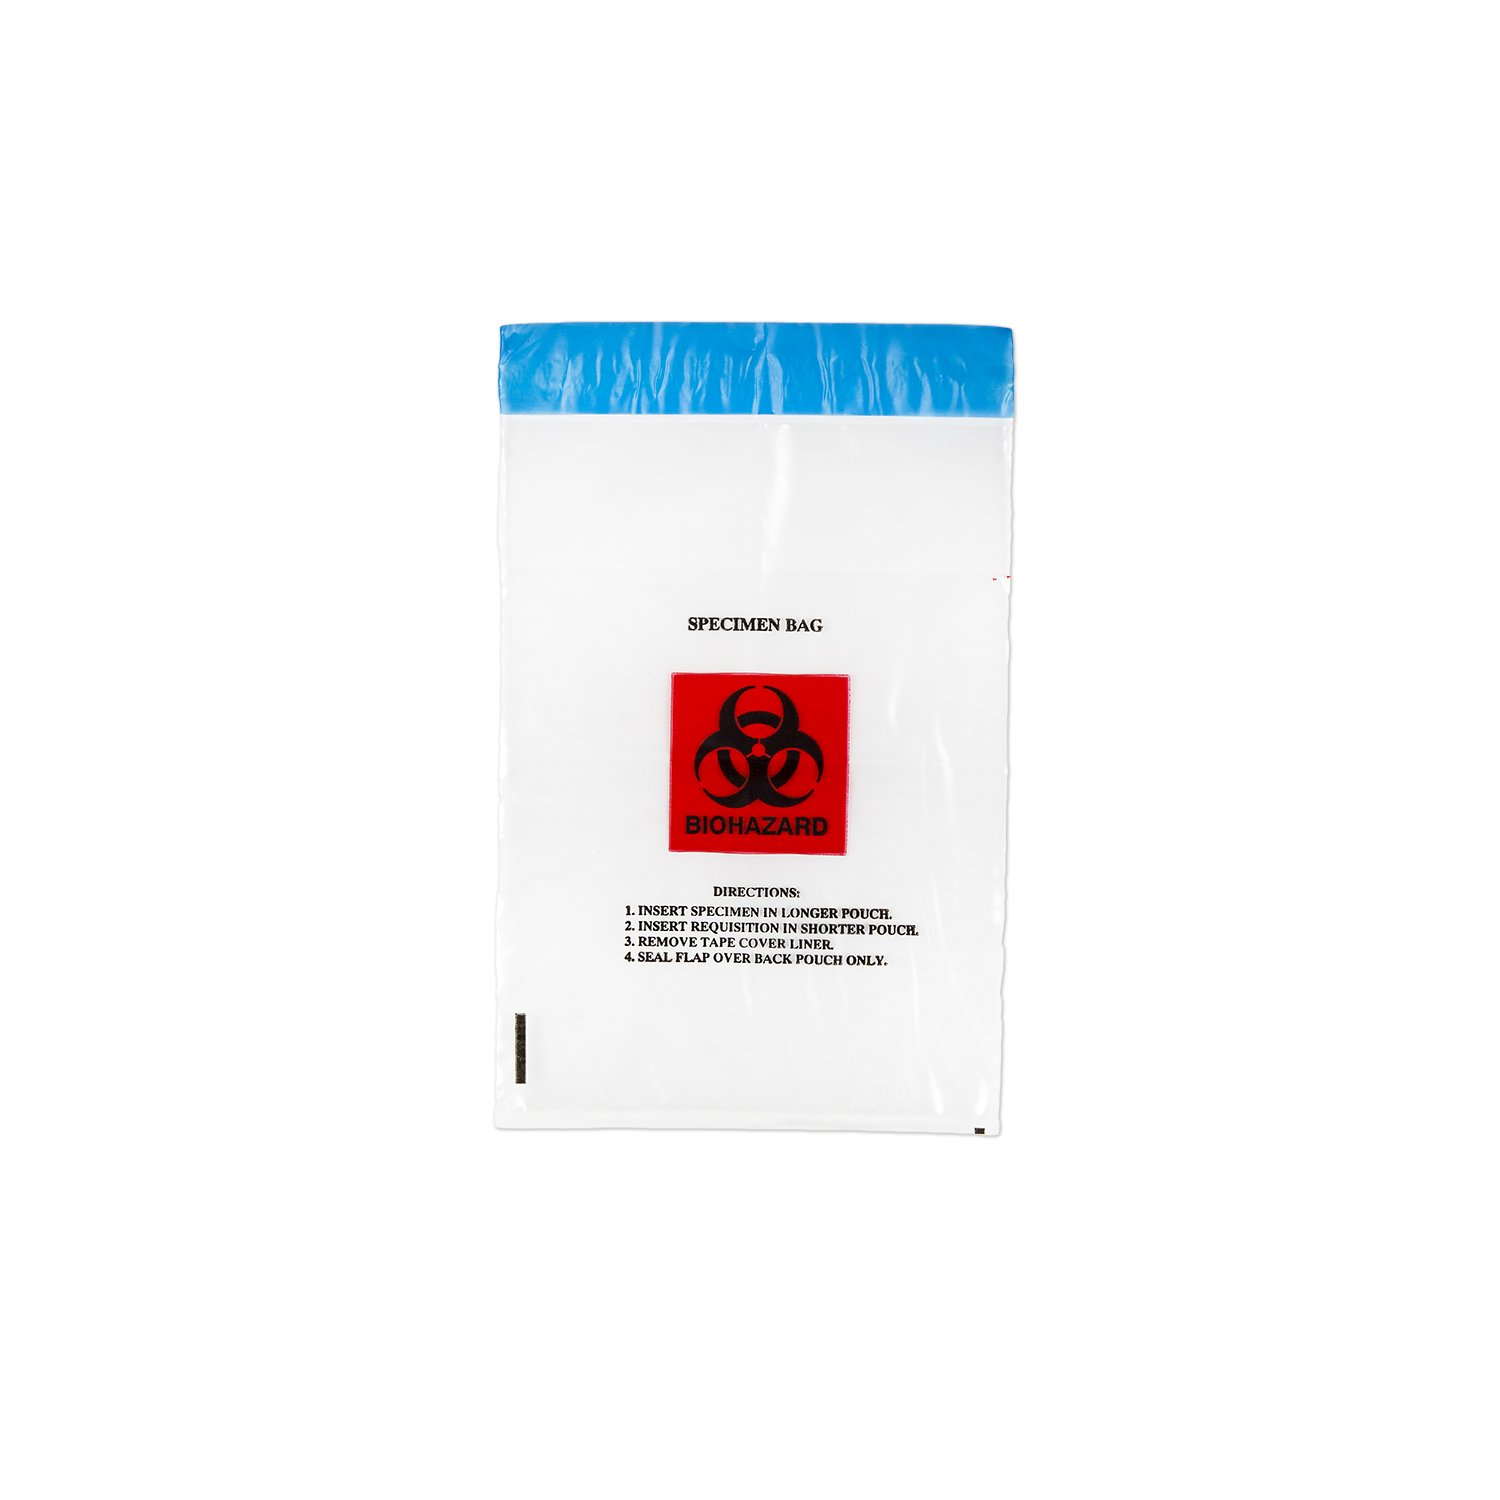 Medegen Medical Products 4065 Lab Specimen Transport Bags, Tamper Evident, Permanent Adhesive Closure with Pouch, Flap, 6'' x 10'', LLDPE, Clear/Black/Red (Pack of 1000)